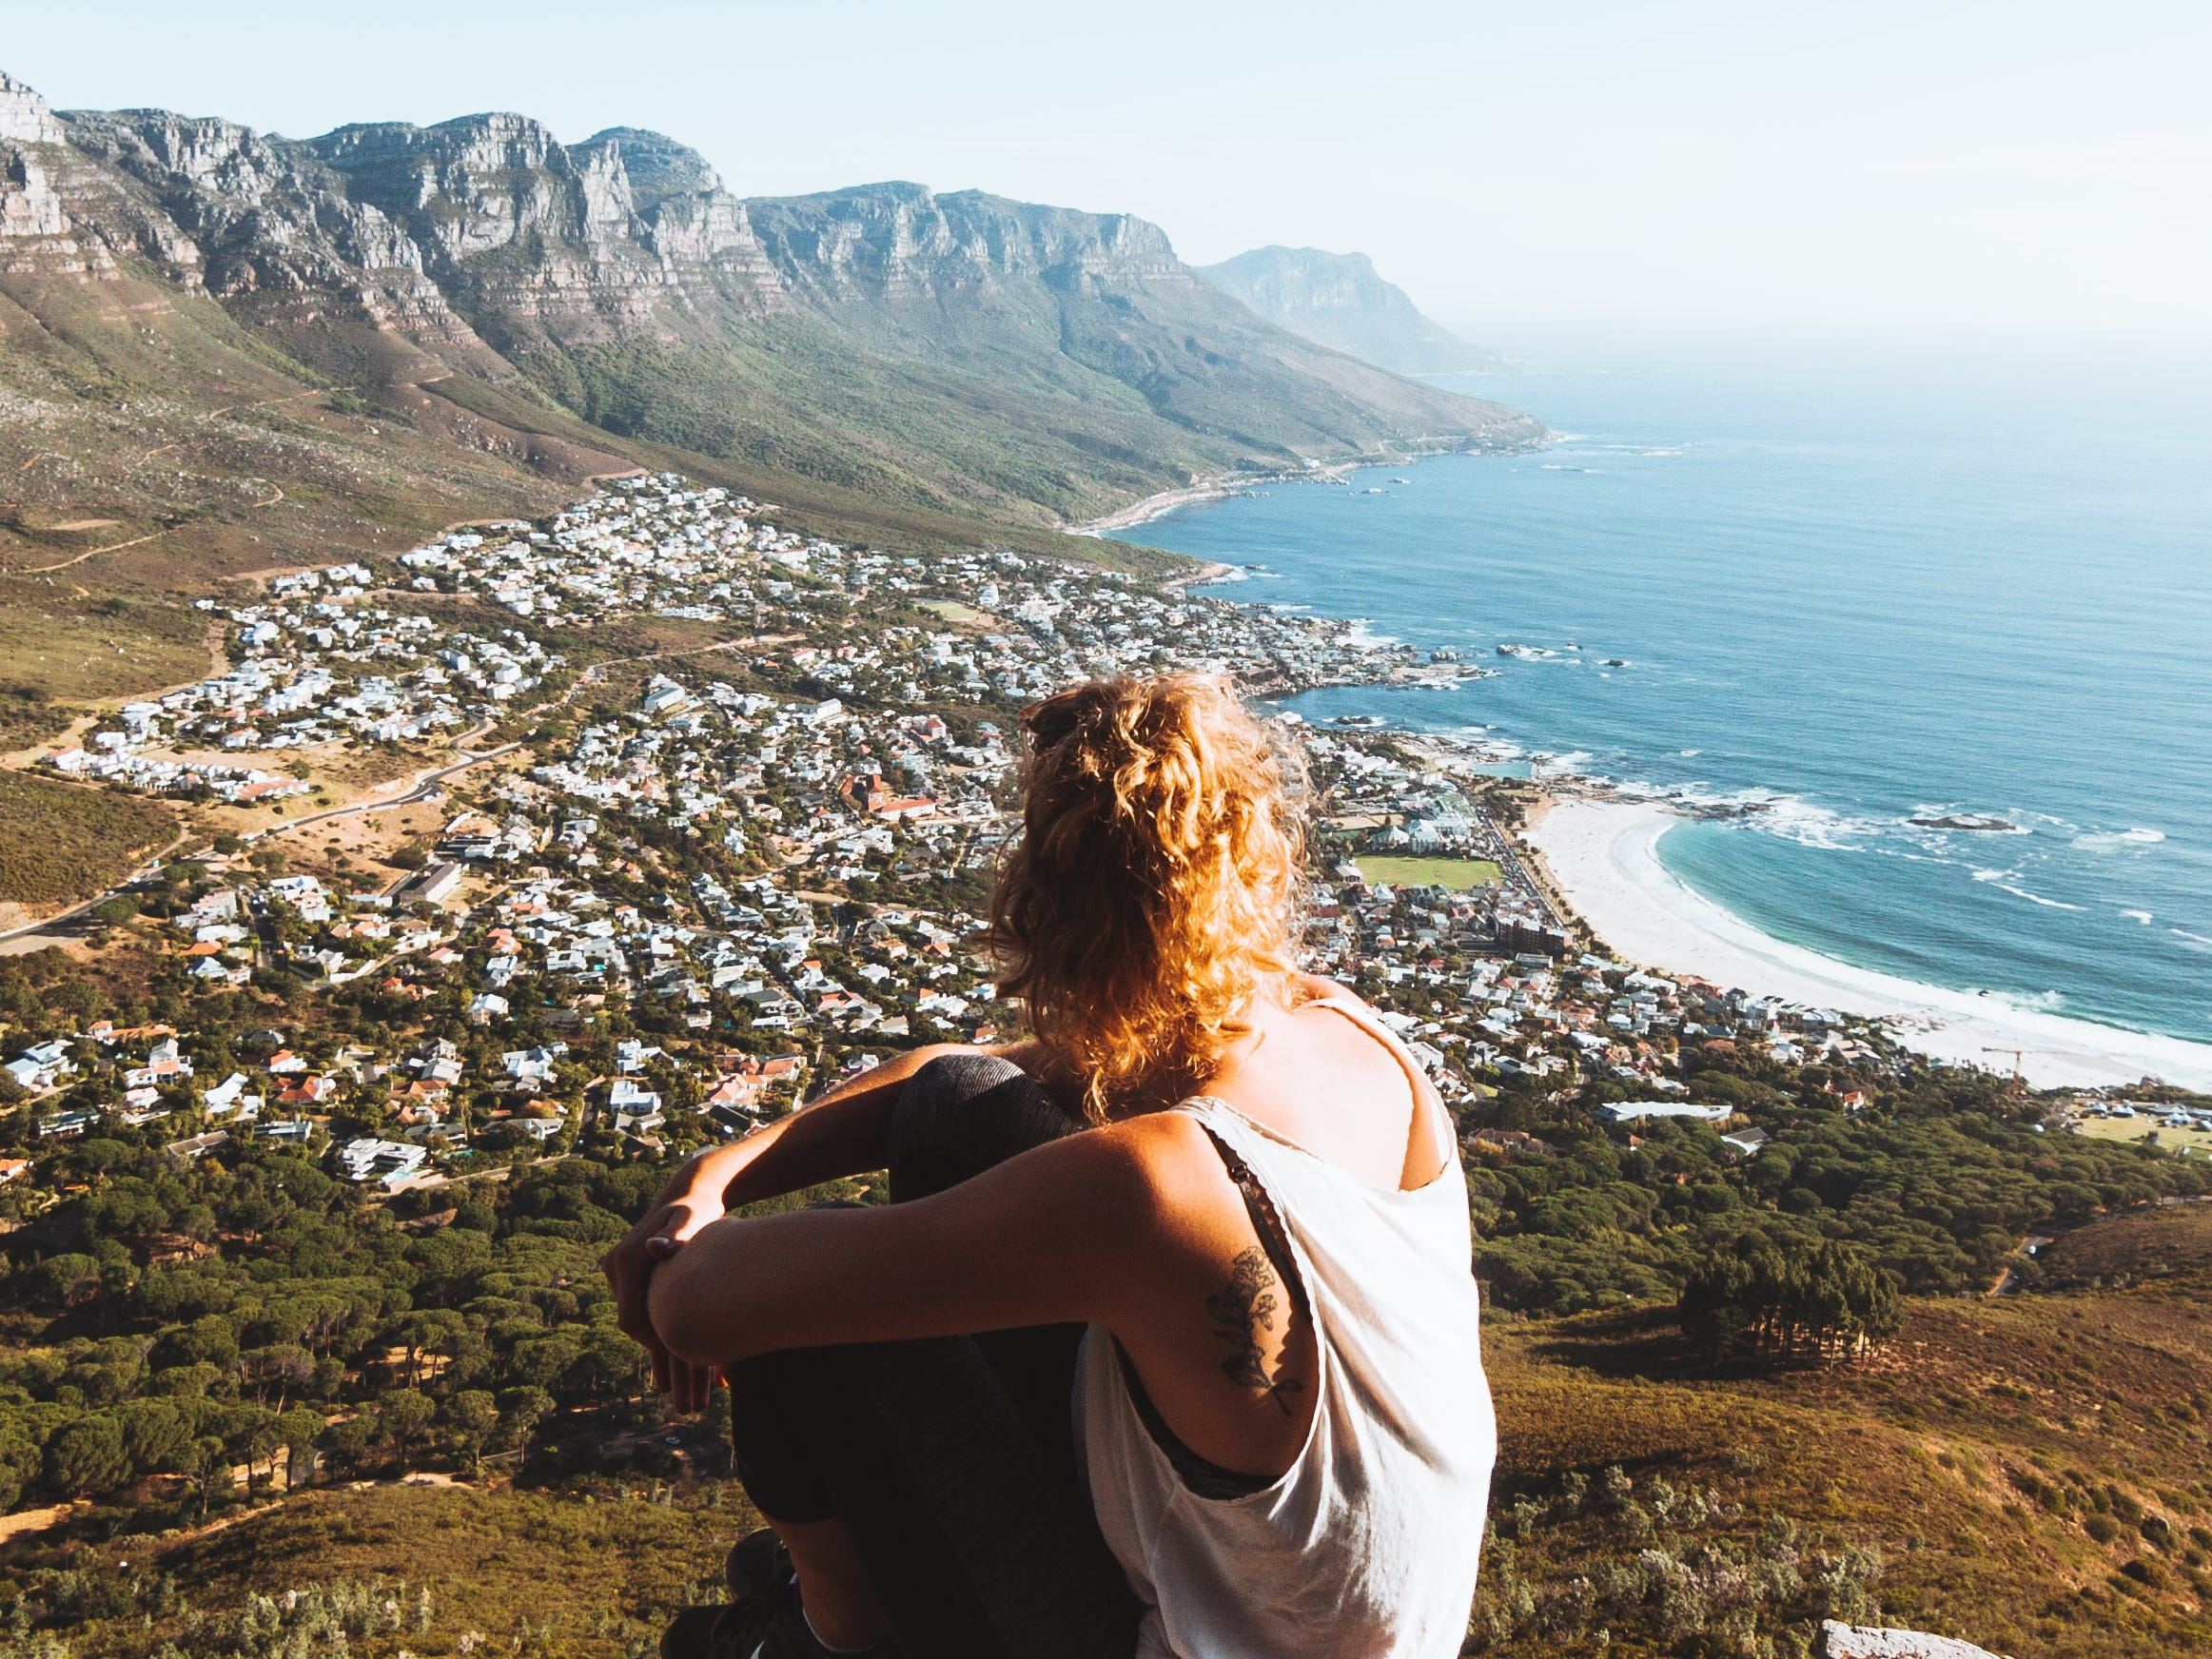 Lishen Ye was able to capture the beauty of Cape Town, South Africa from above.